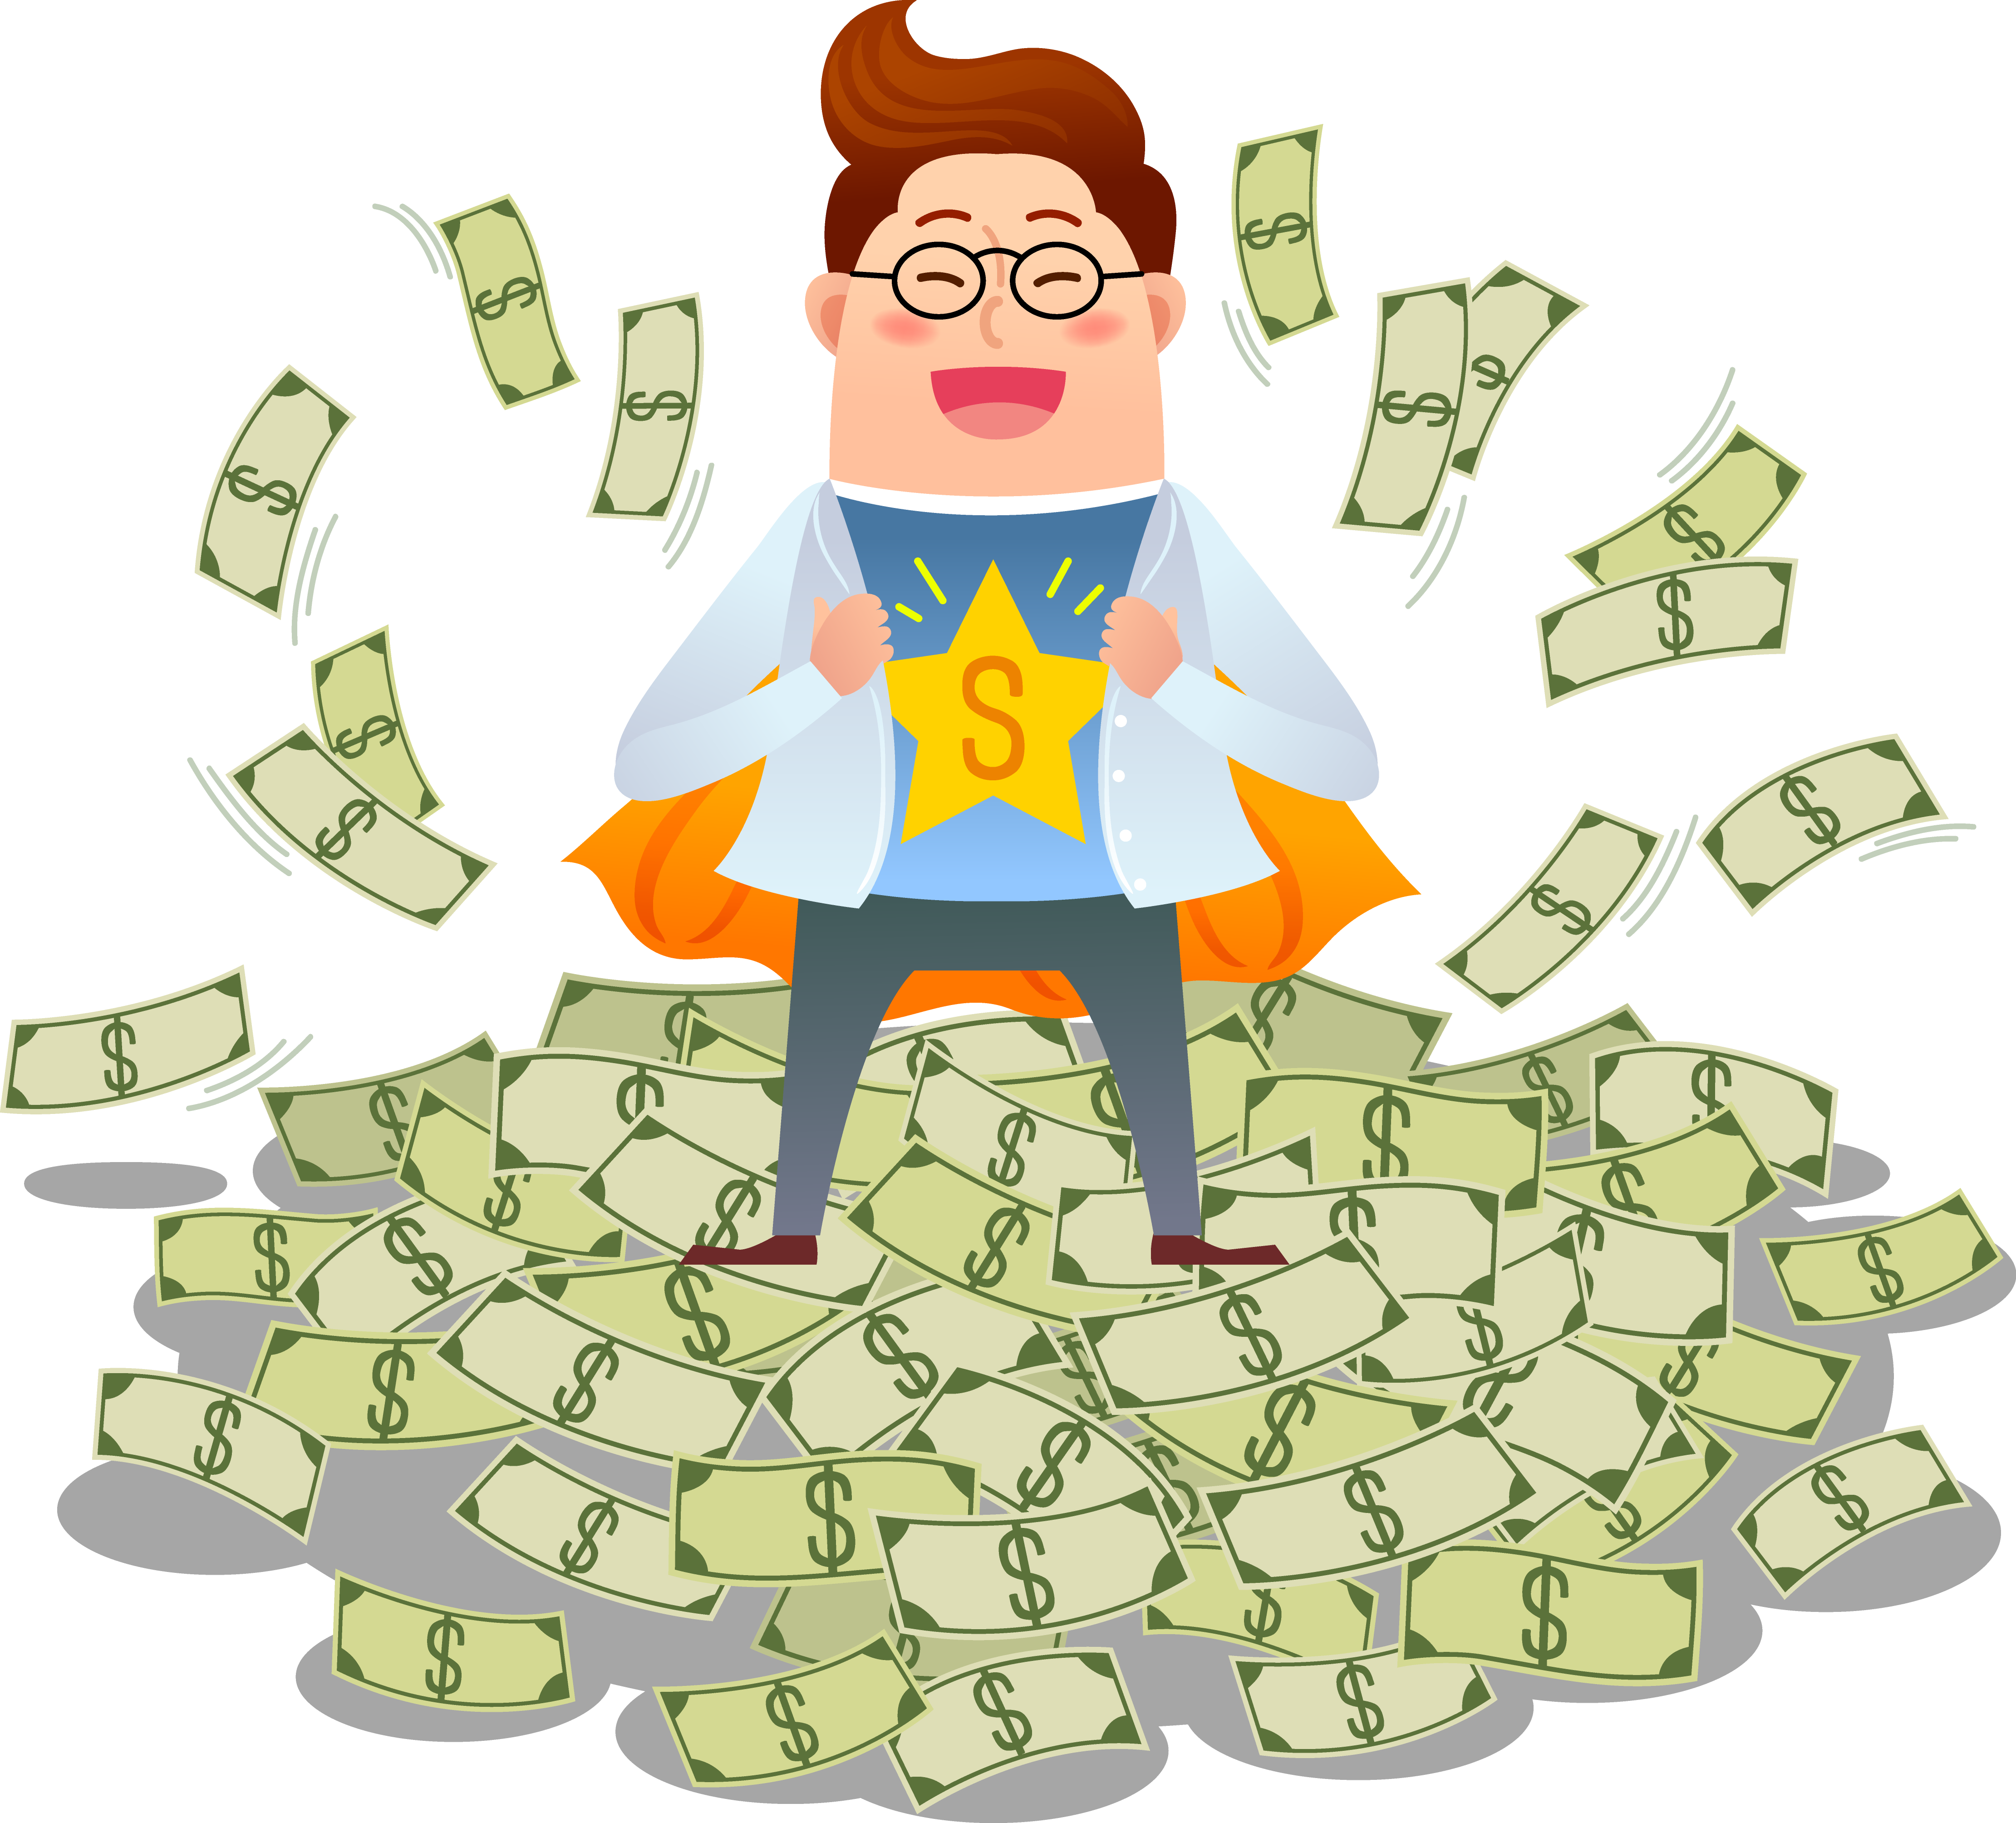 Clipart thumbs up with money vector black and white Superman Money Cartoon Clip art - Superman dress up with money 4442 ... vector black and white